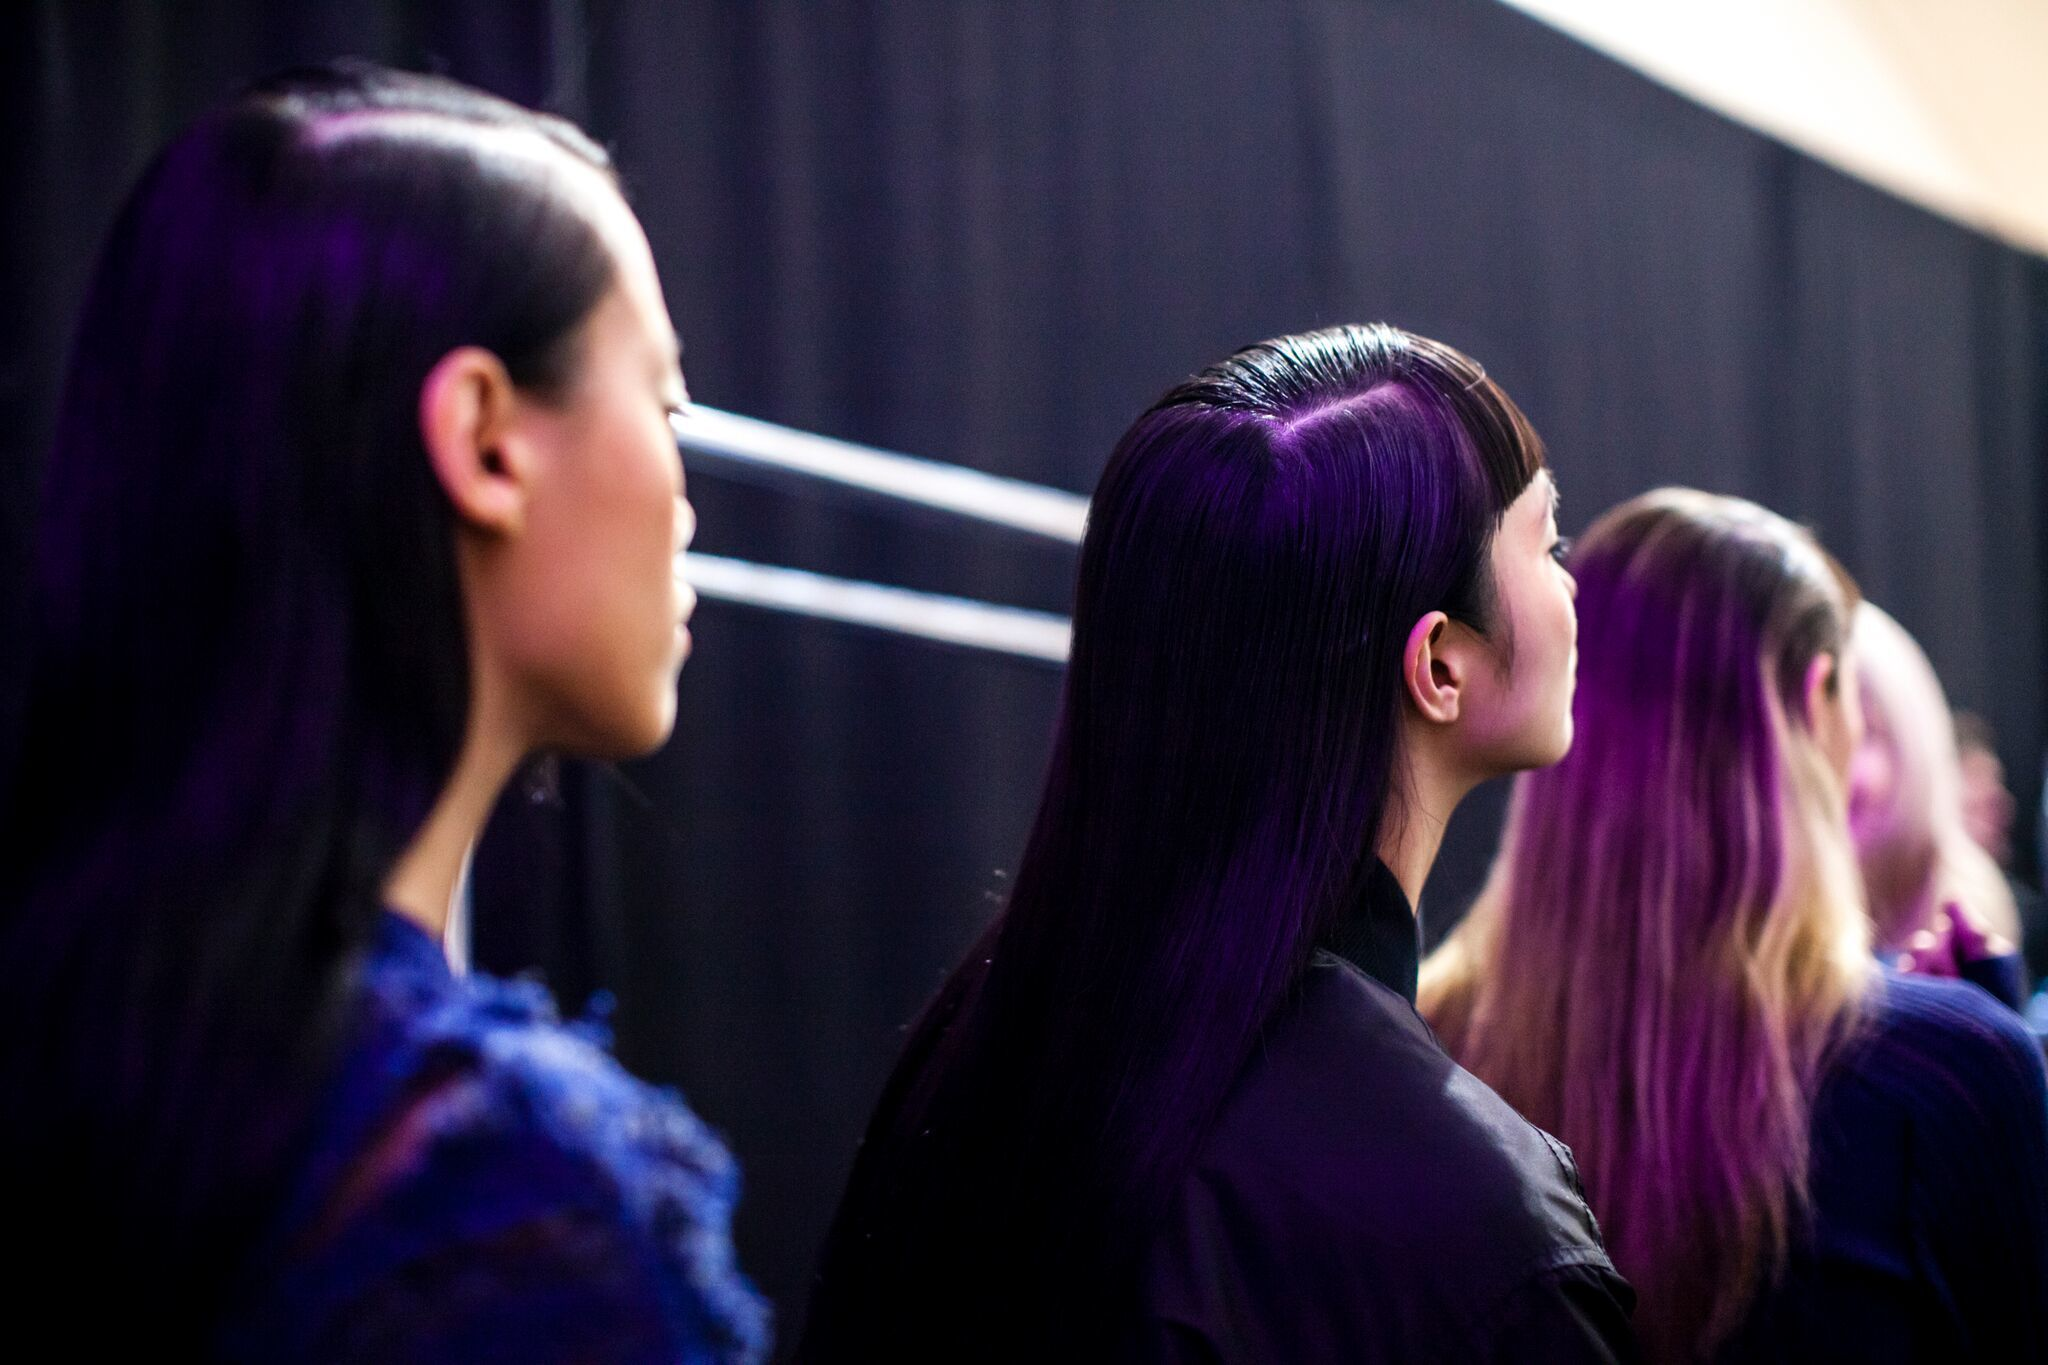 It's all about sleek, understated hairstyles for Opening Ceremony's show during Made LA on Friday.